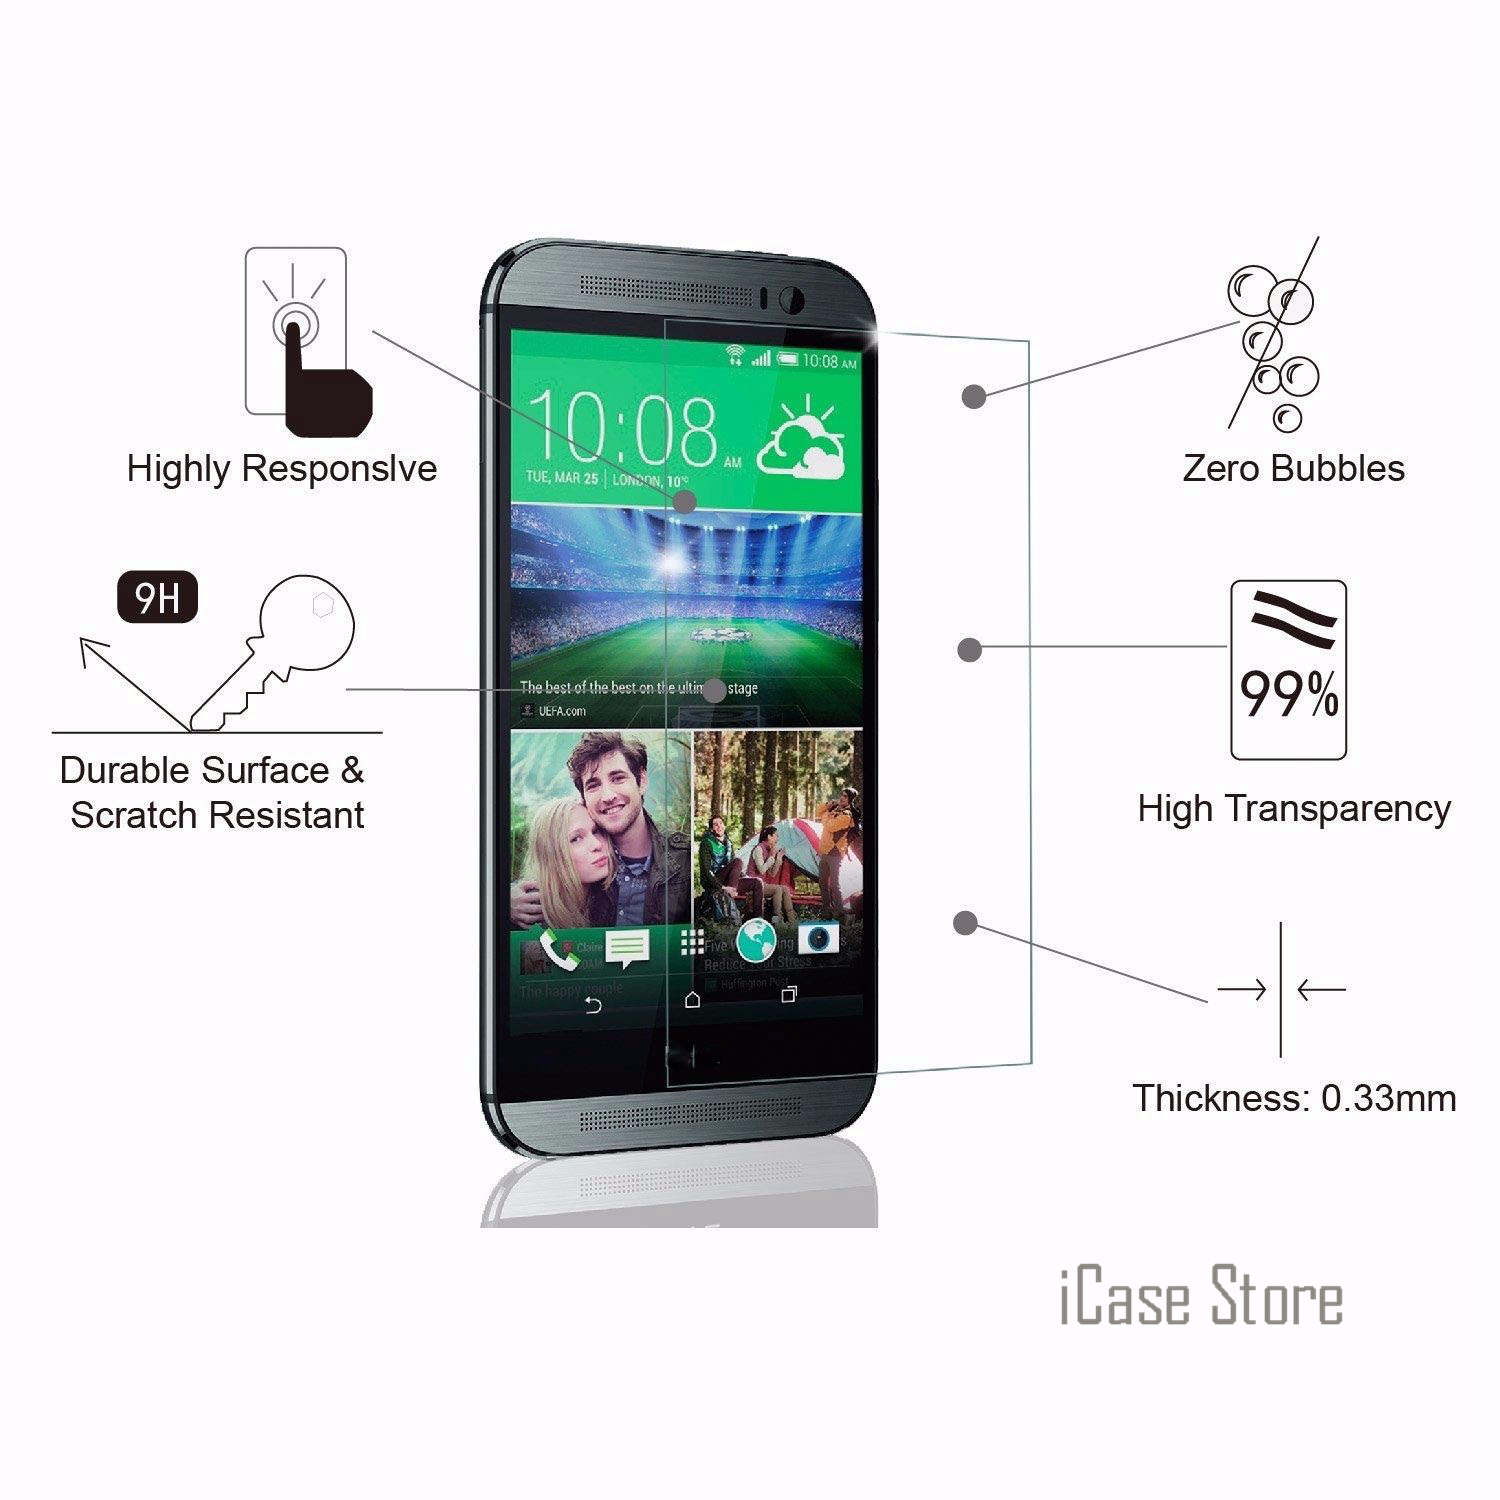 9H Water-Proof Tempered Glass For HTC Desire 510 526 820 One Mini M4 601E M7 M8 M9 A9 320 628 530 630 Screen Protector Film Case